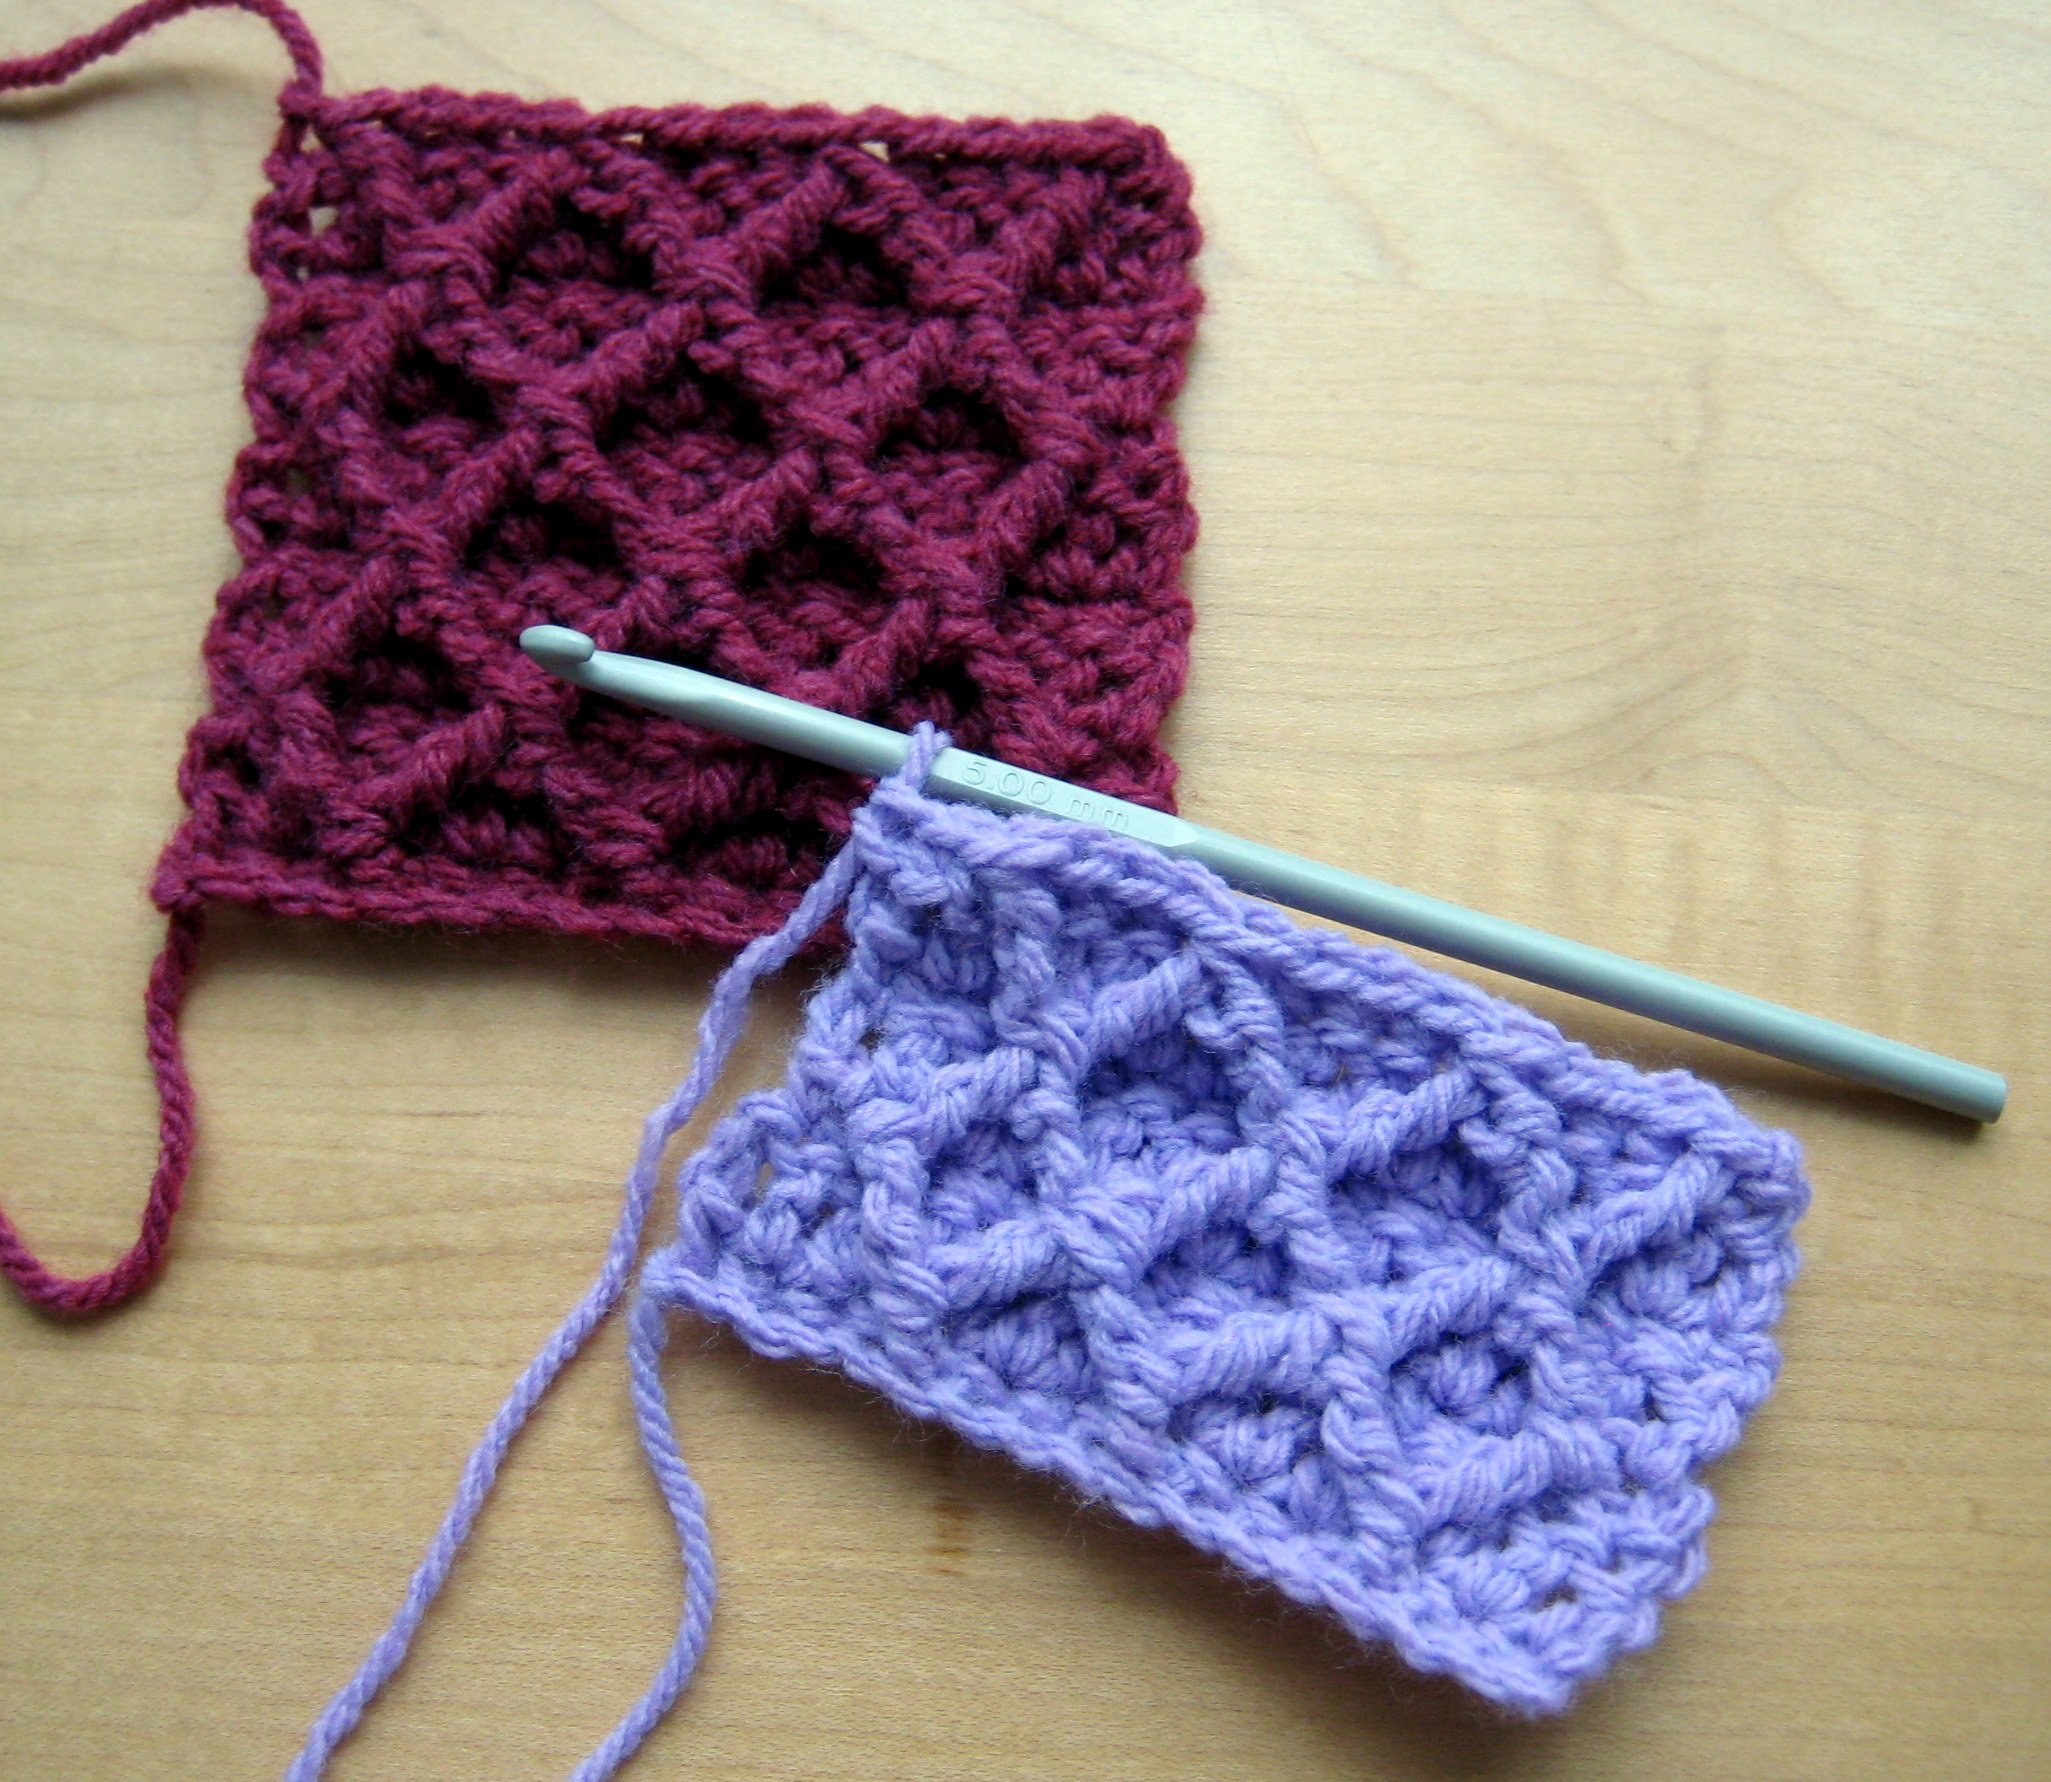 Crochet Stitches Video : Diamond Trellis Stitch Video Tutorial Make My Day Creative